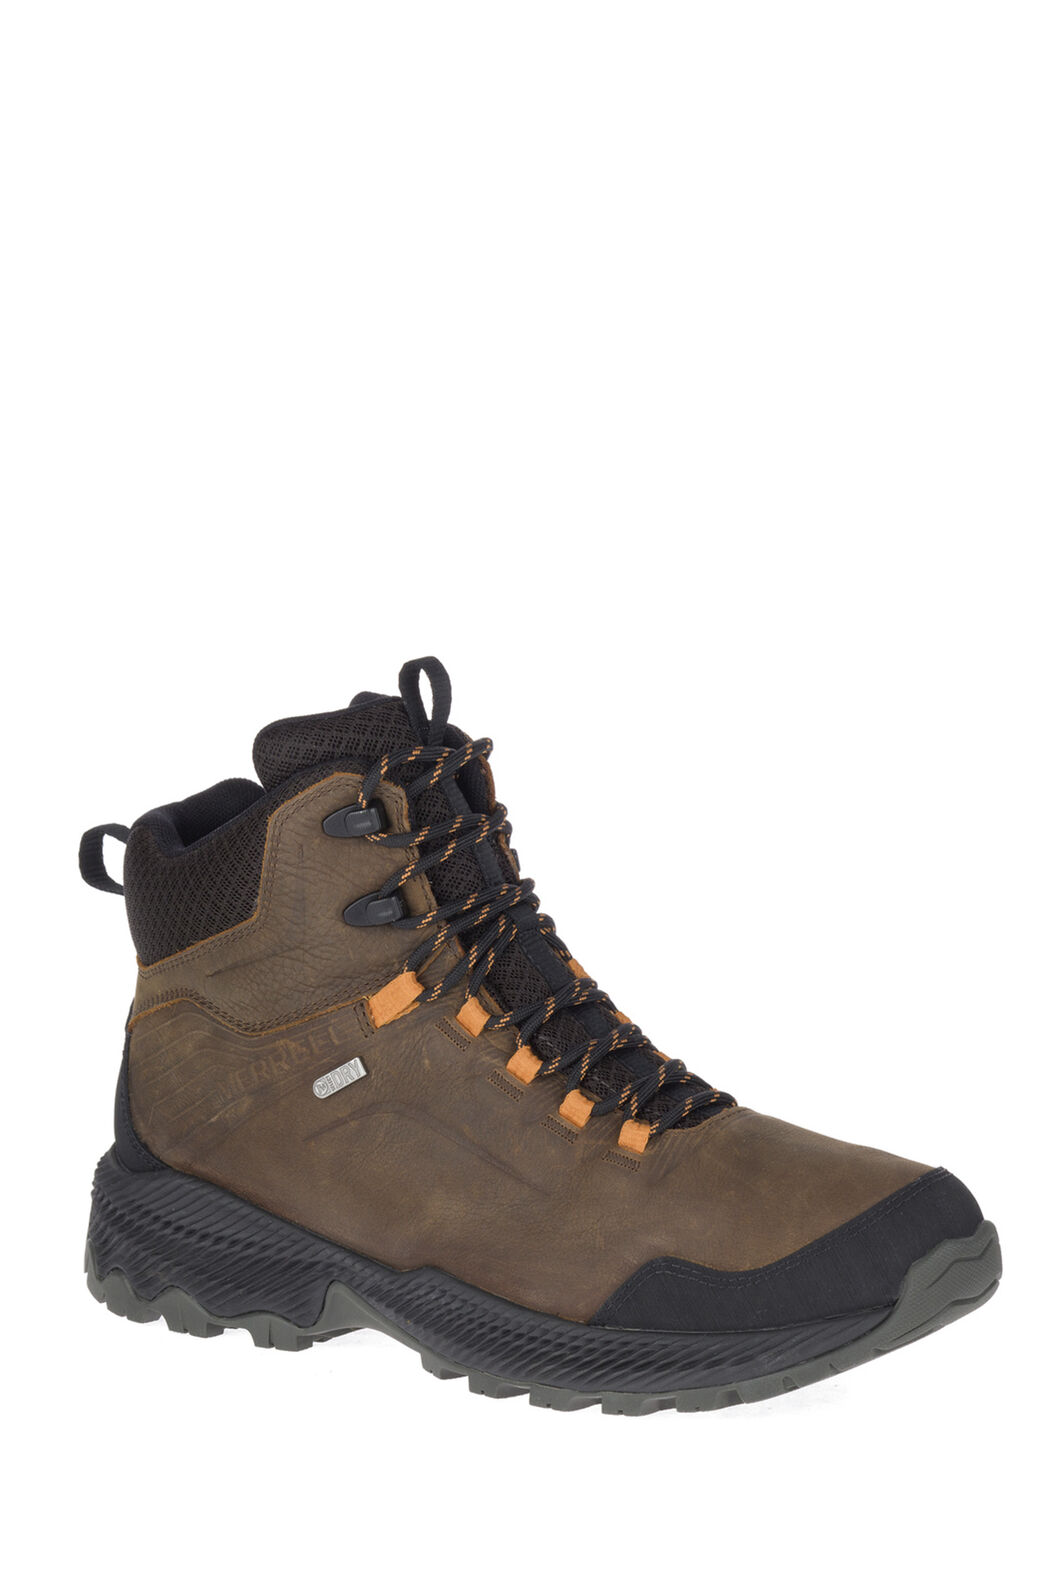 Merrell Men's Forestbound Mid WP Hiking Boots, DARK EARTH, hi-res